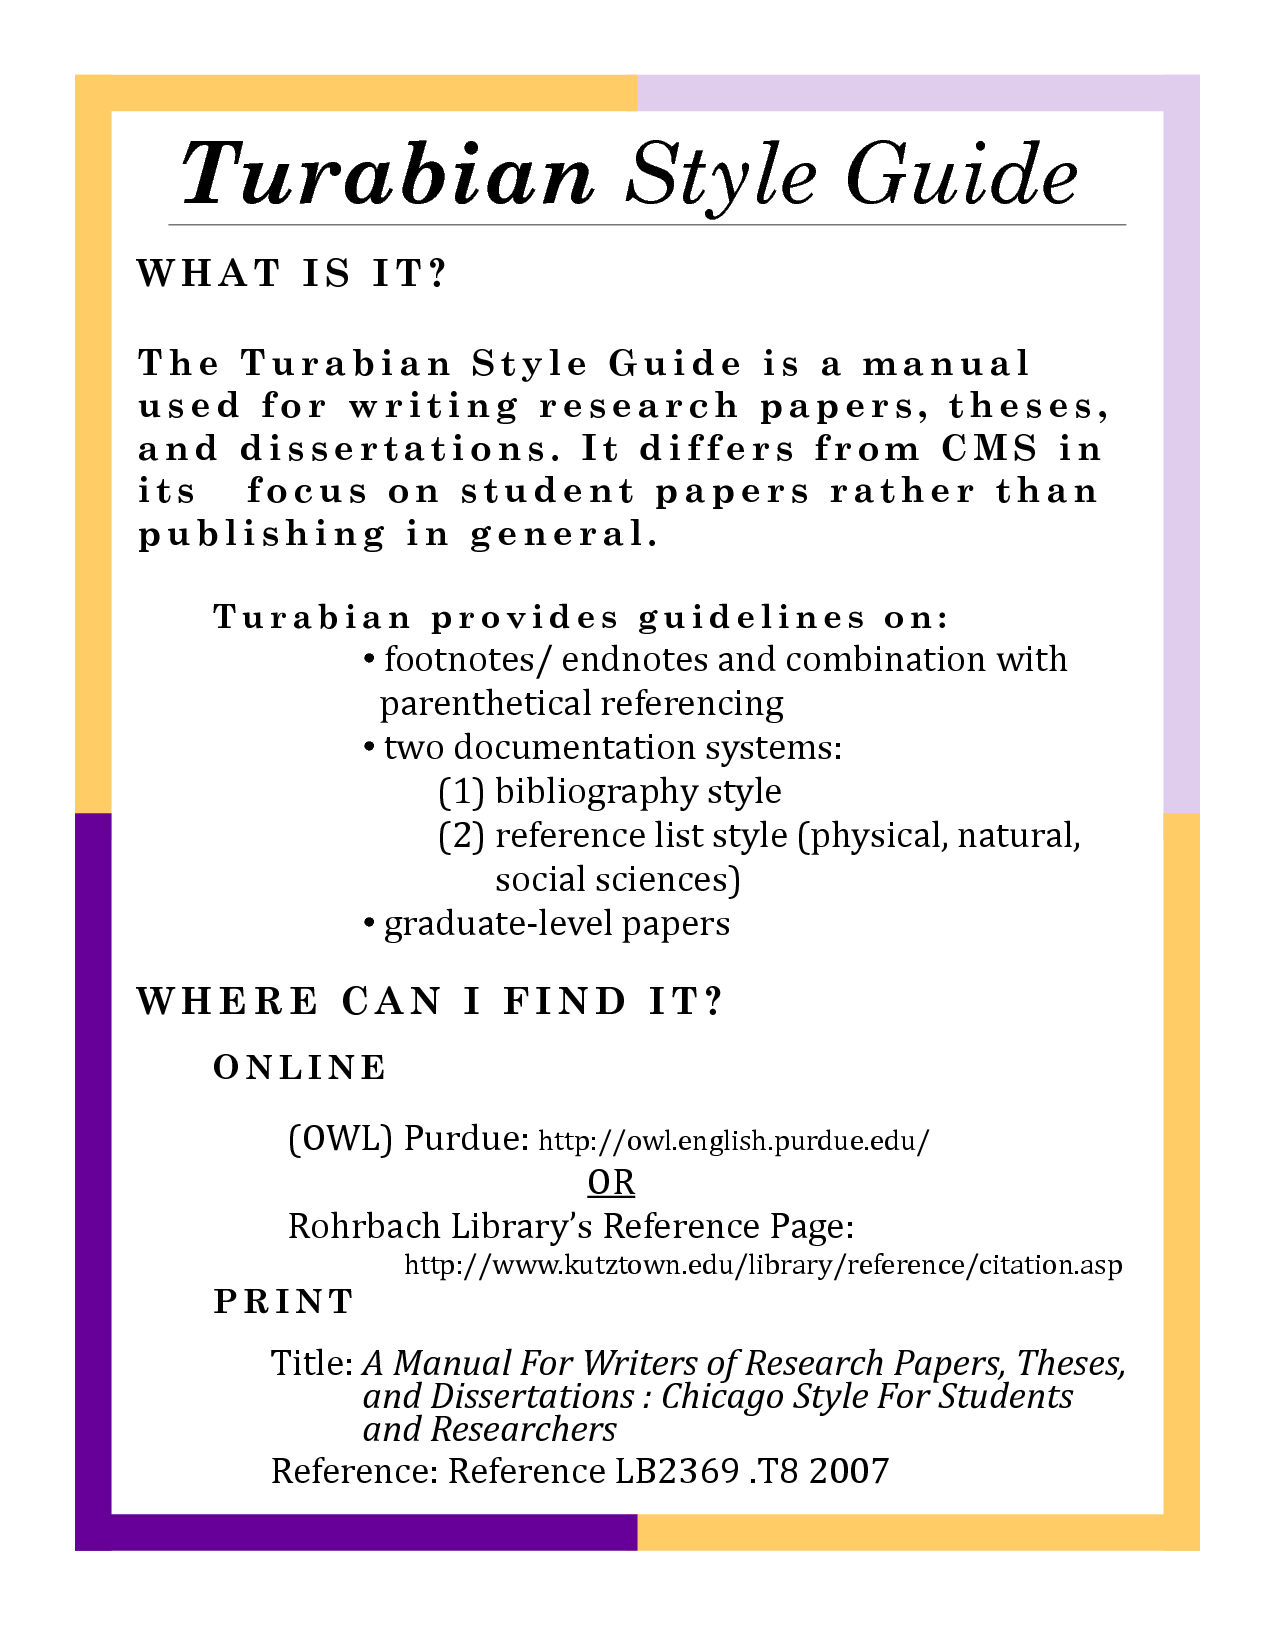 how to write a paper in turabian style Specific guidelines for formatting a paper in chicago style are outlined in manuals such as the 16th edition of the chicago manual of style , which was issued in september 2010, and the 7th edition of a pocket guide to writing in history by mary lynn rampolla.